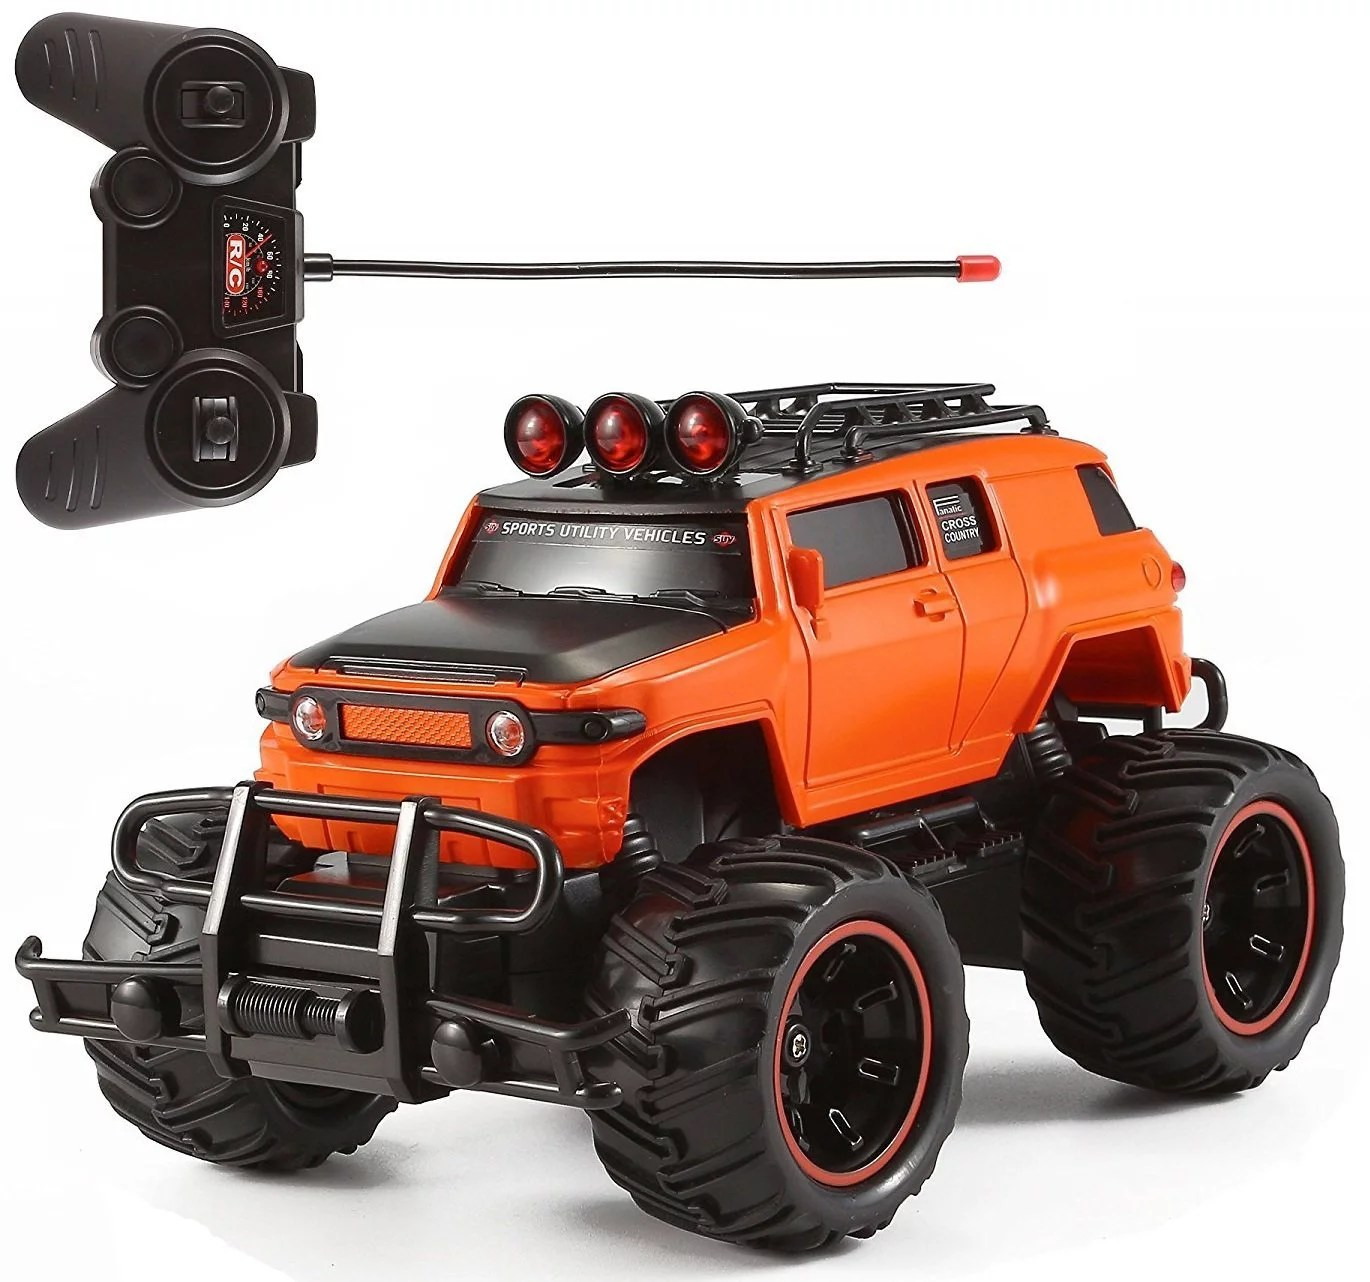 Rtr Rc Trucks Electric Rc Monster Truck Toy Remote Control Rtr Electric Vehicle Off Road High Speed Race Car 1 20 Scale Radio Controlled Orange Color